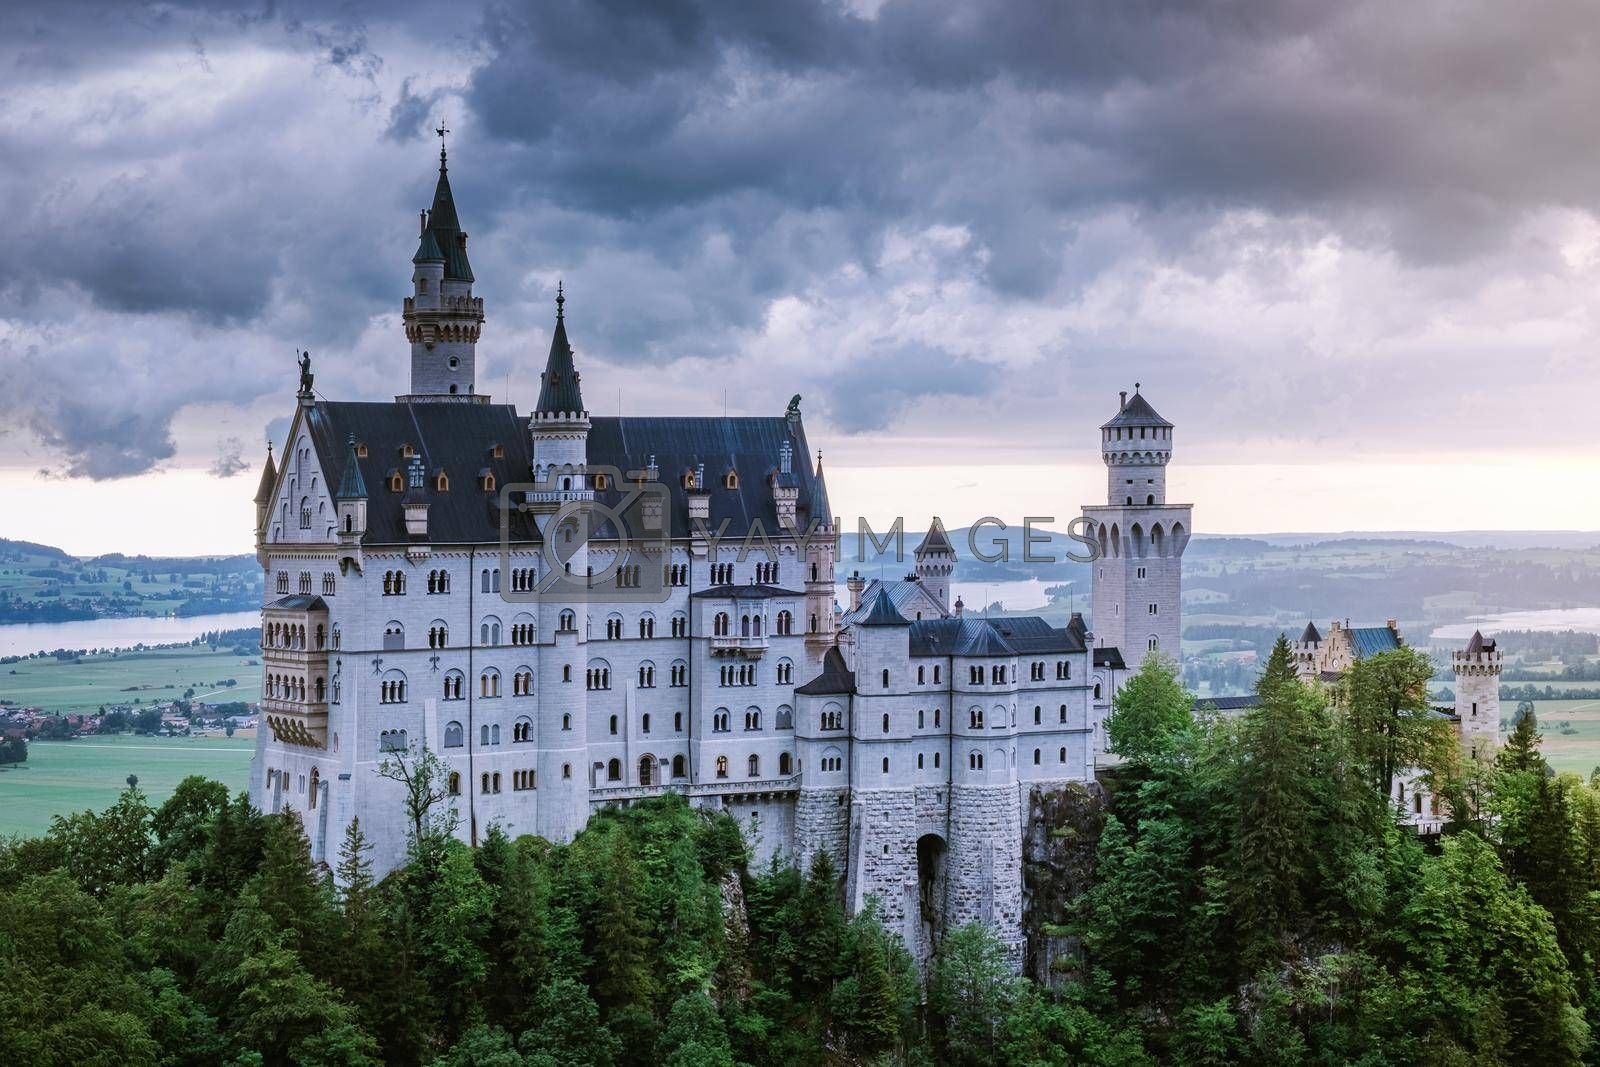 Beautiful view of world-famous Neuschwanstein Castle, the nineteenth-century Romanesque Revival palace built for King Ludwig II on a rugged cliff near Fussen, southwest Bavaria, Germany. Europe